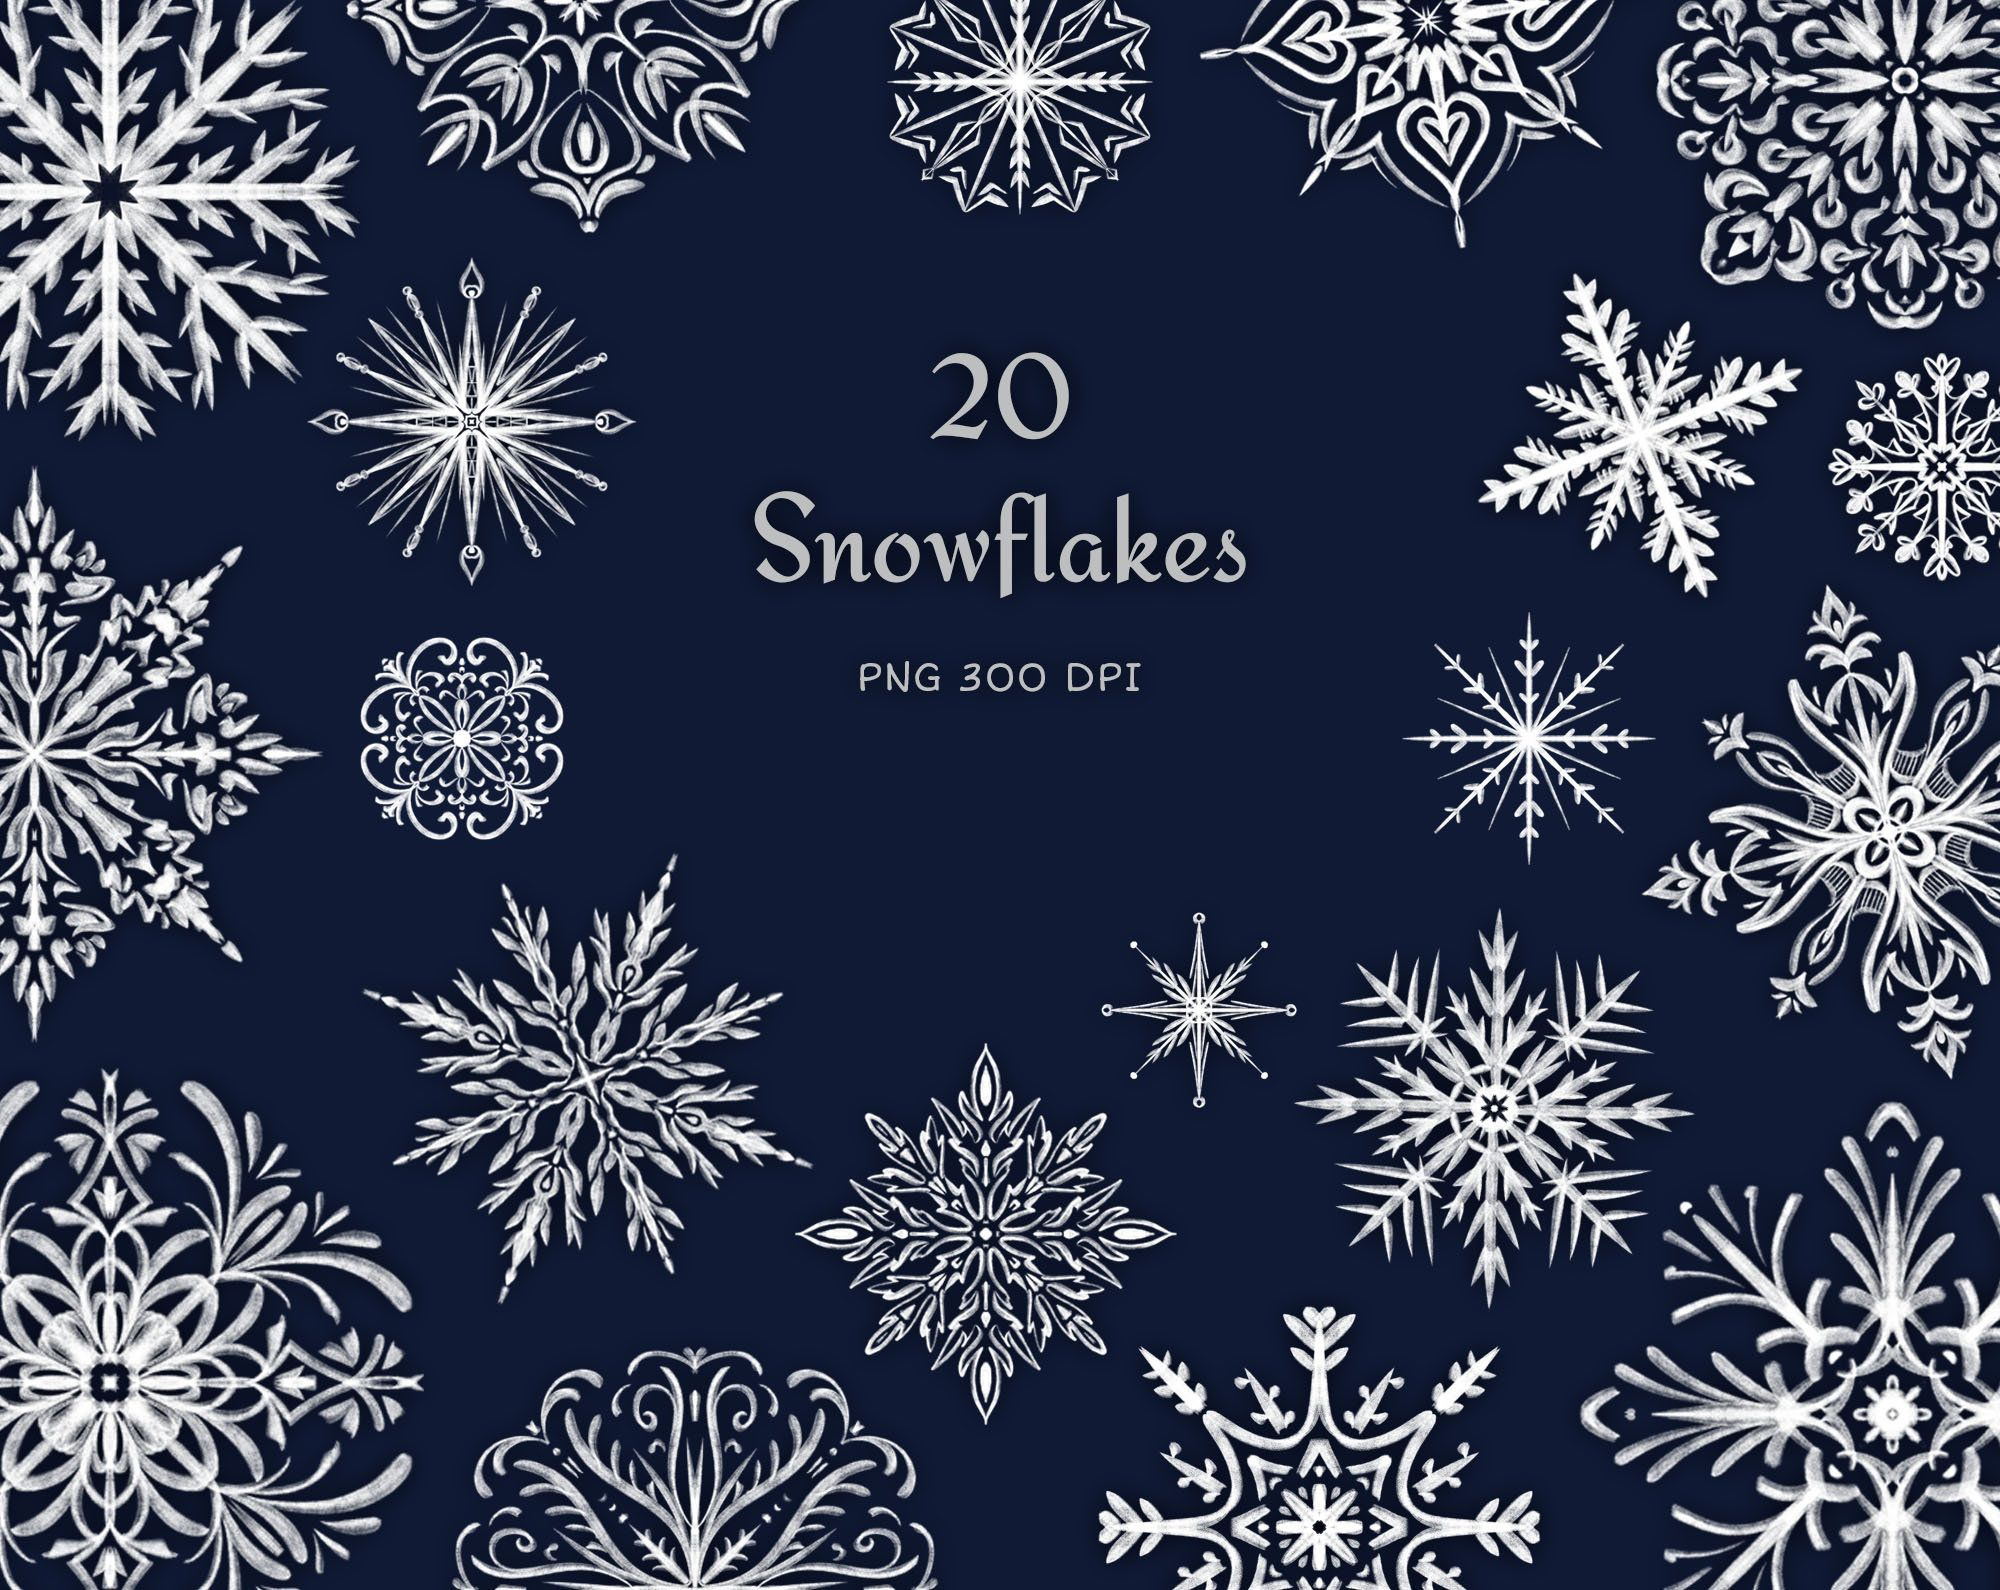 Snowflake Png Clipart Winter Clip Art Christmas Graphics Etsy In 2021 Christmas Graphics Snowflake Images Holiday Clipart